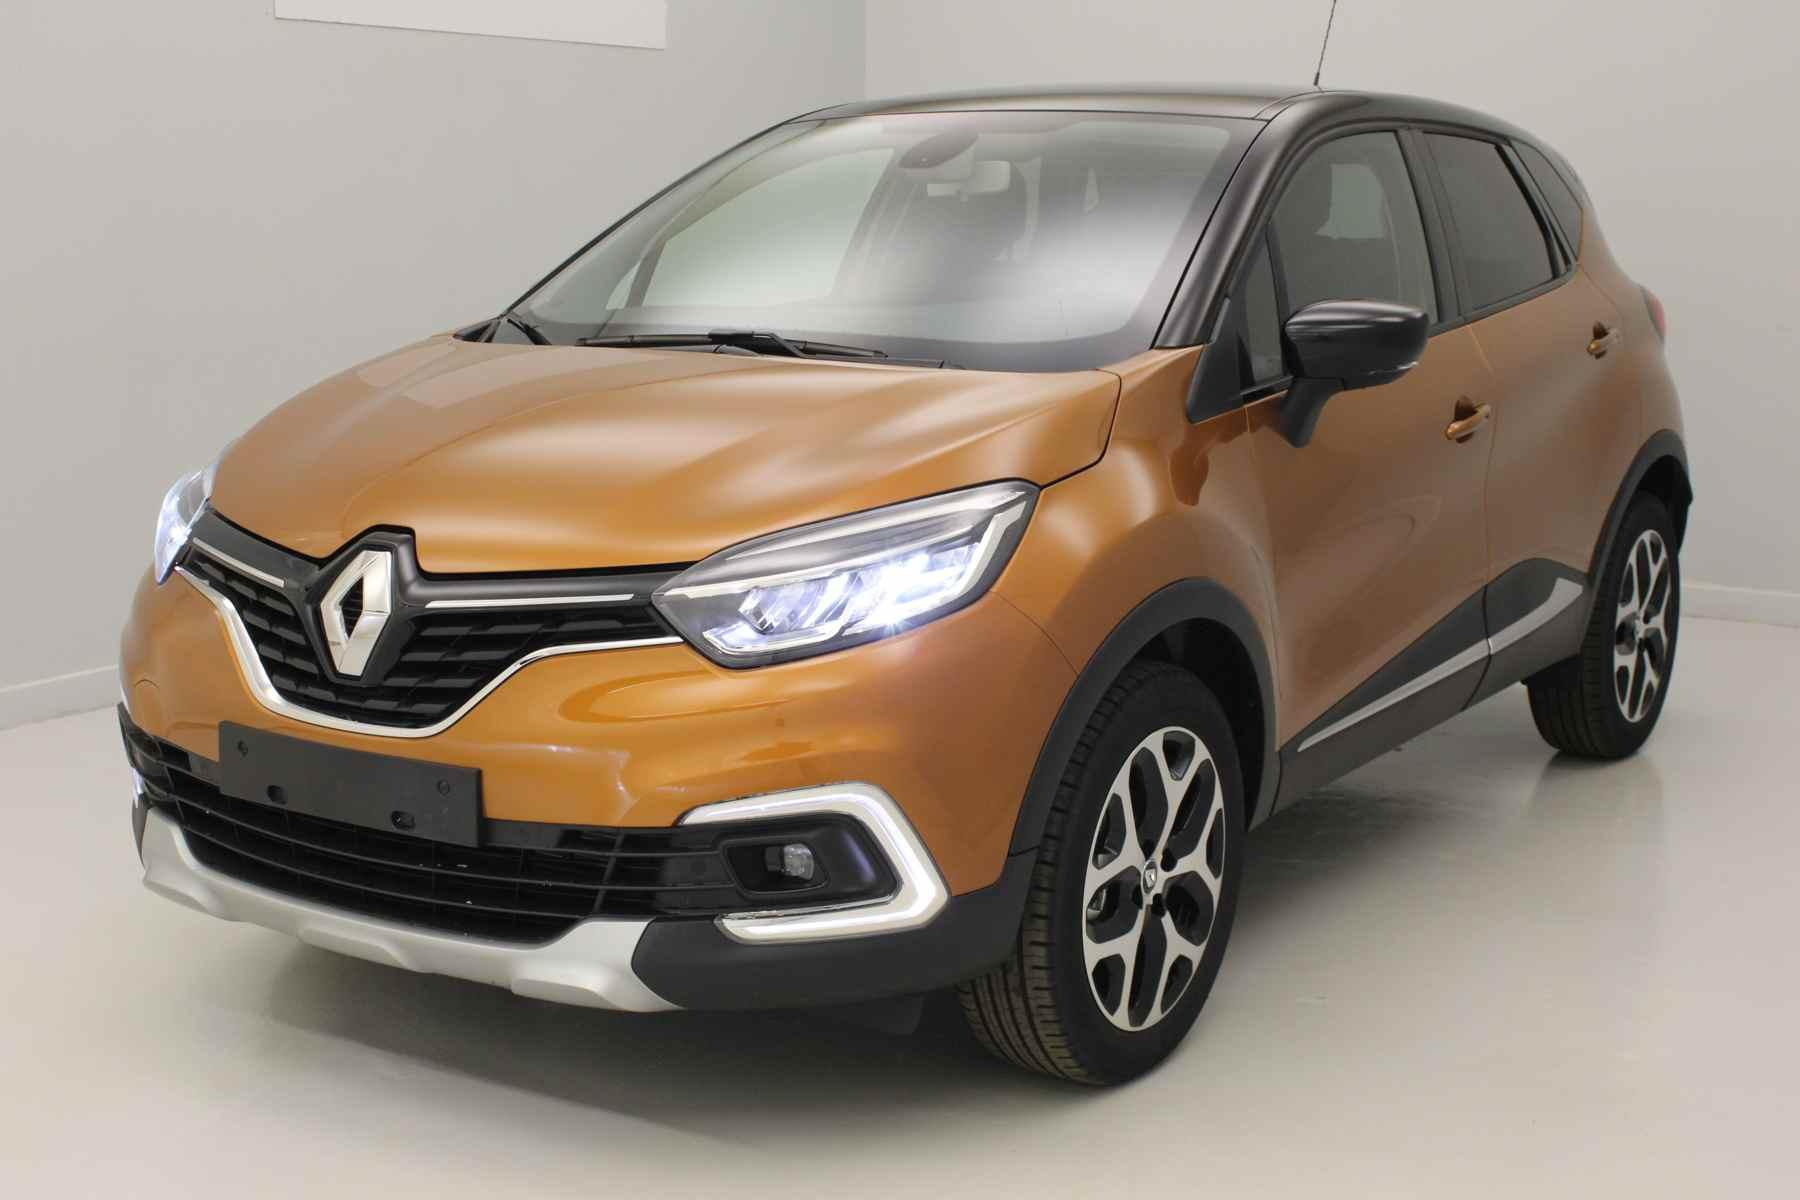 renault nouveau captur tce 90 energy intens orange atacama toit noir pack r link bose. Black Bedroom Furniture Sets. Home Design Ideas